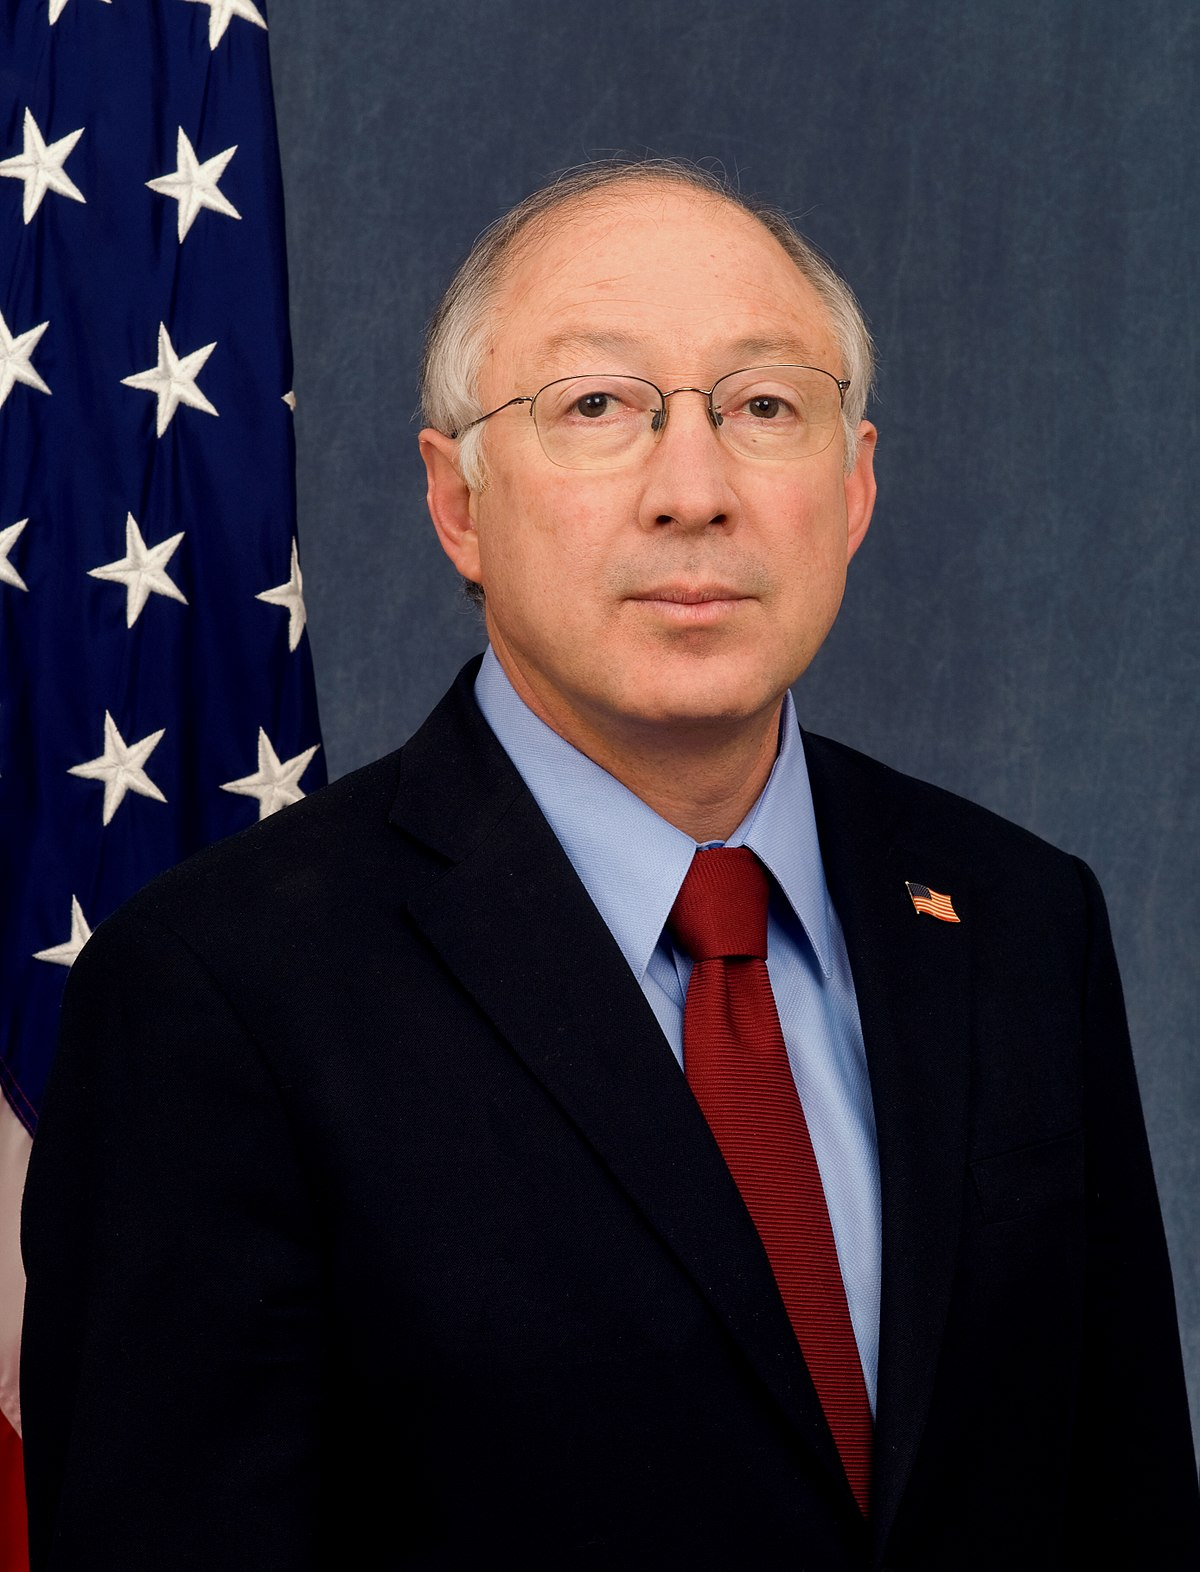 Ken salazar wikipedia for Who is the secretary of the interior department